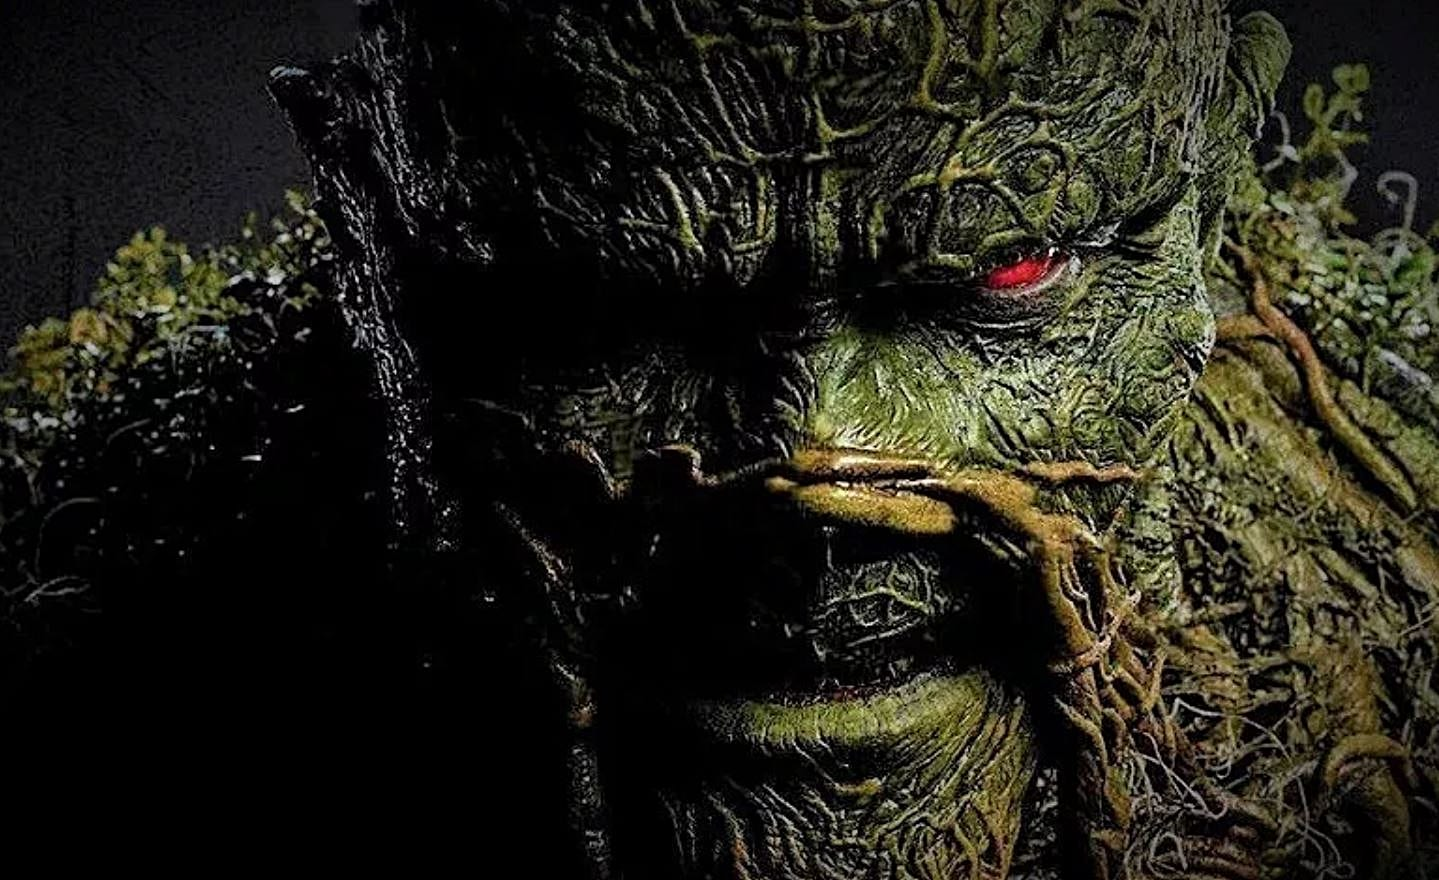 Swamp Thing New Trailer and Poster Released By DC